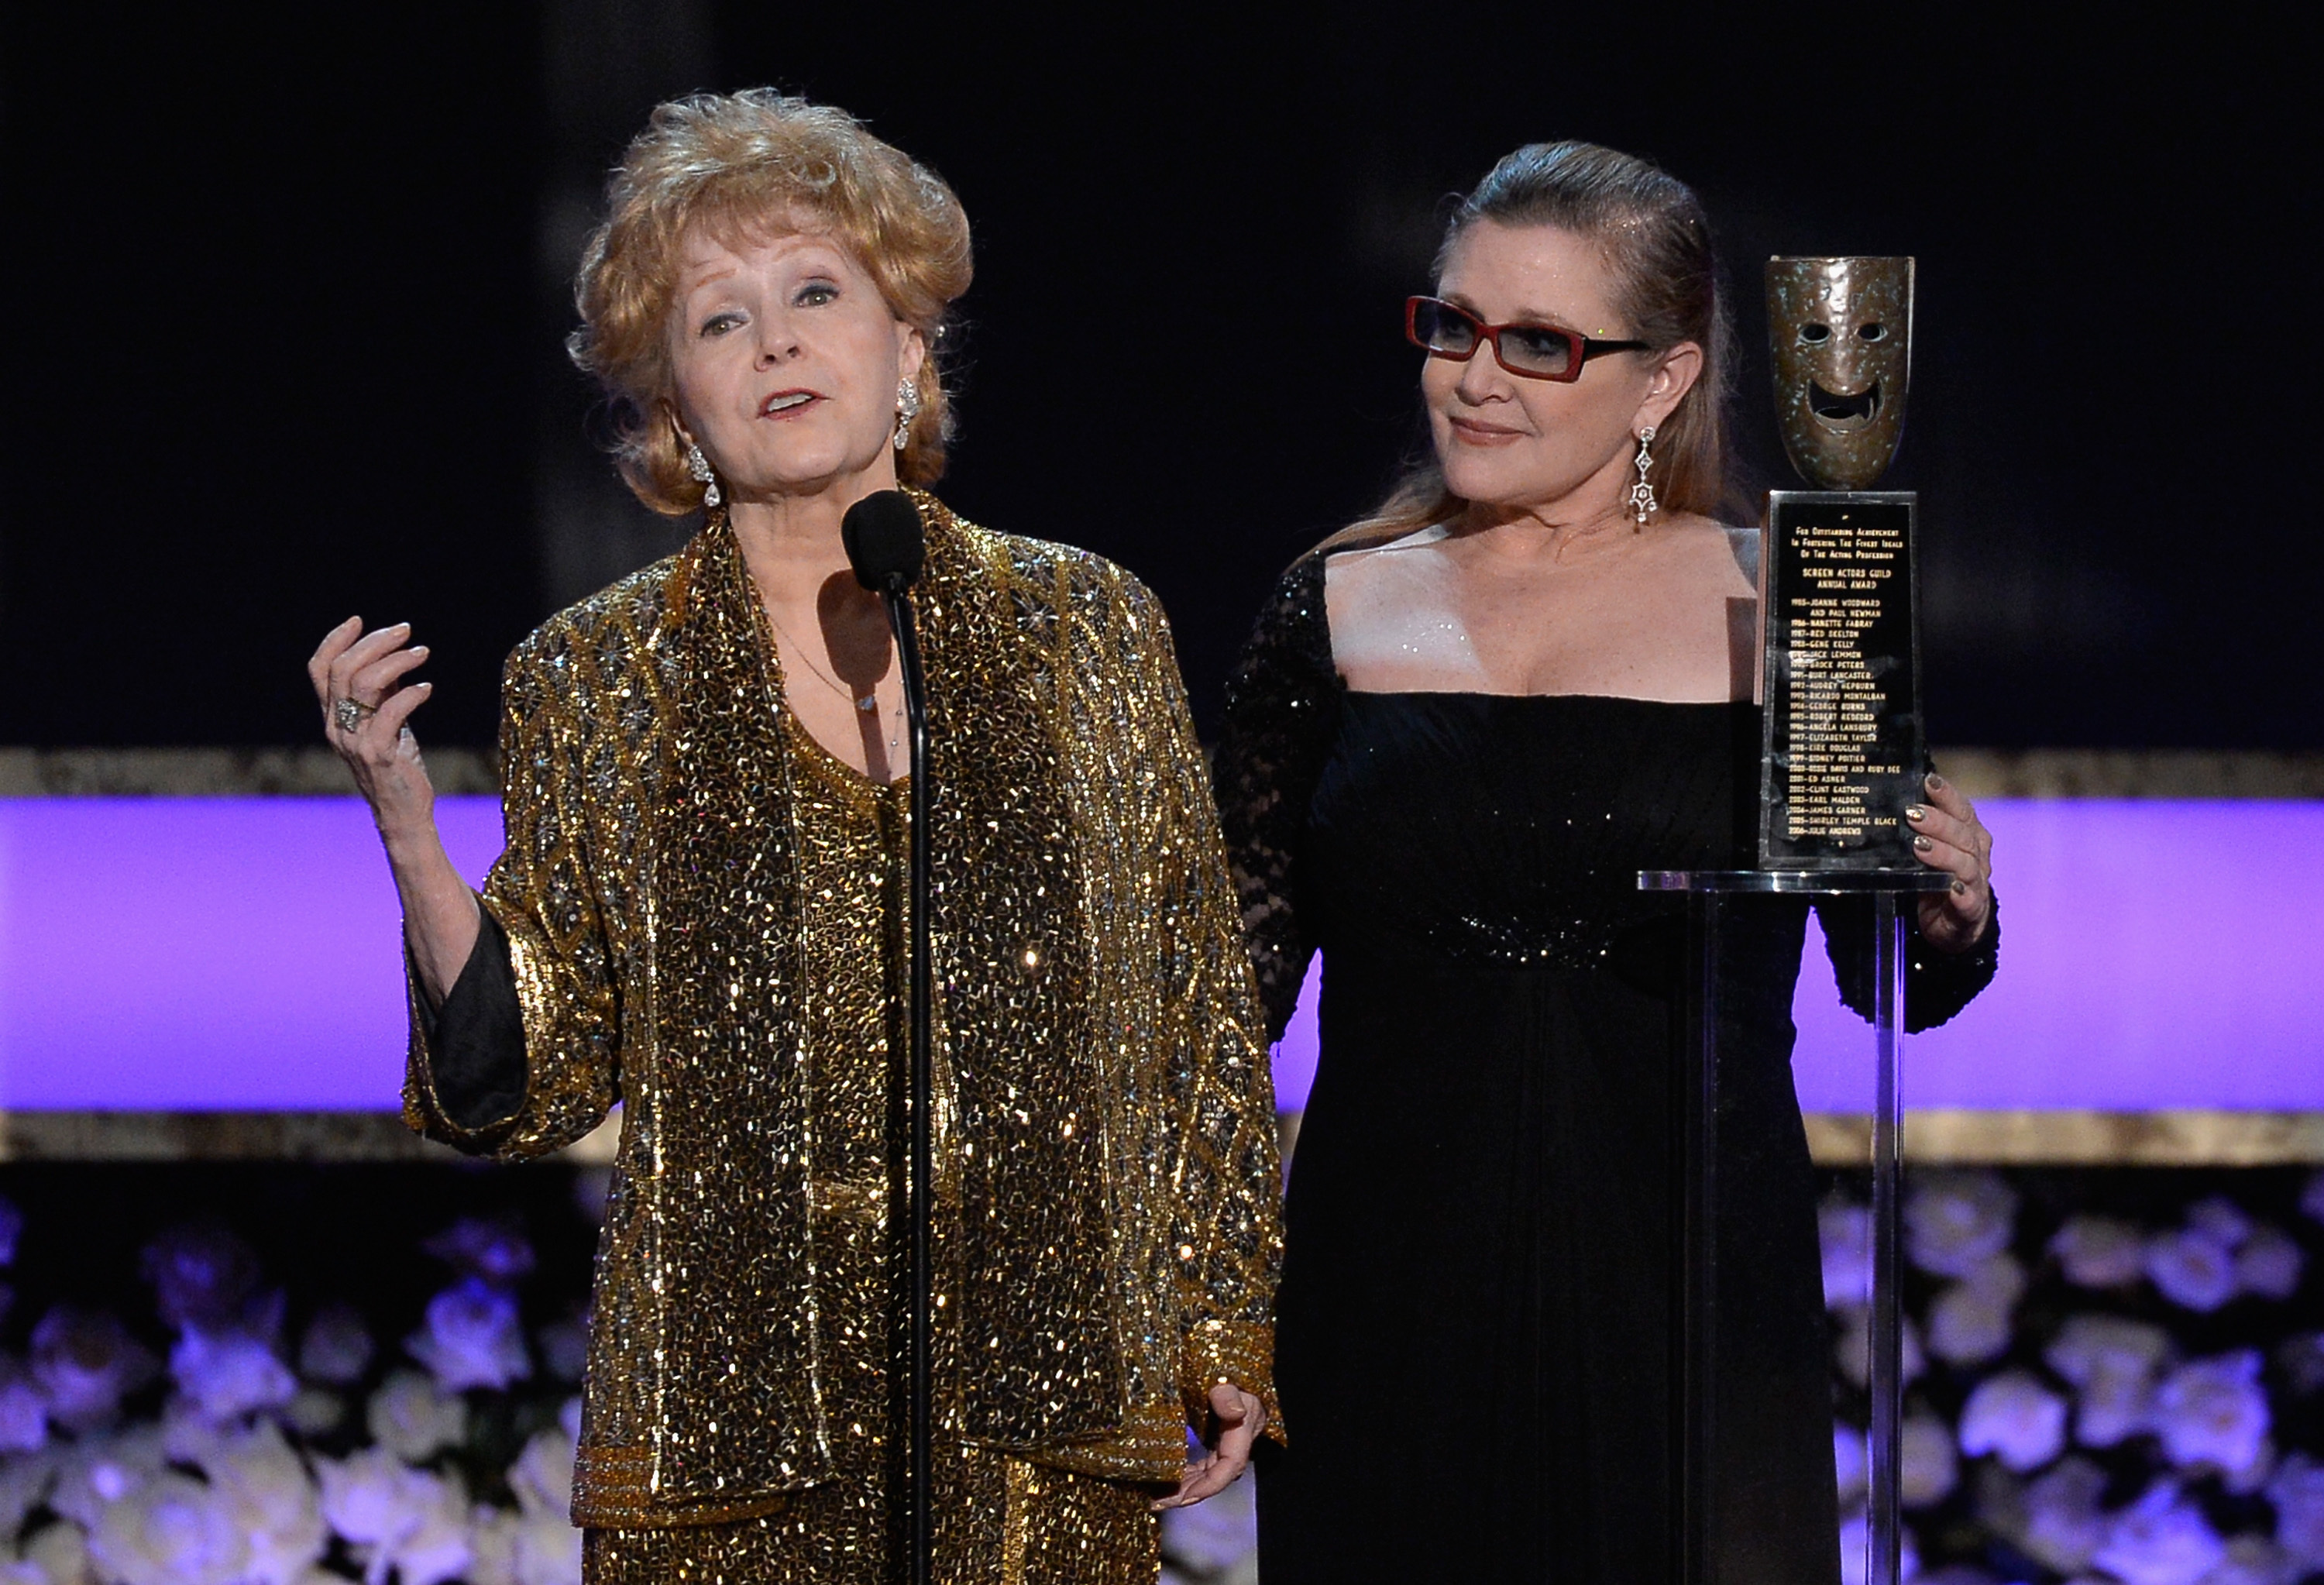 Debbie Reynolds accepts the Life Achievement Award from Carrie Fisher onstage at the 21st Annual Screen Actors Guild Awards on January 25, 2015.